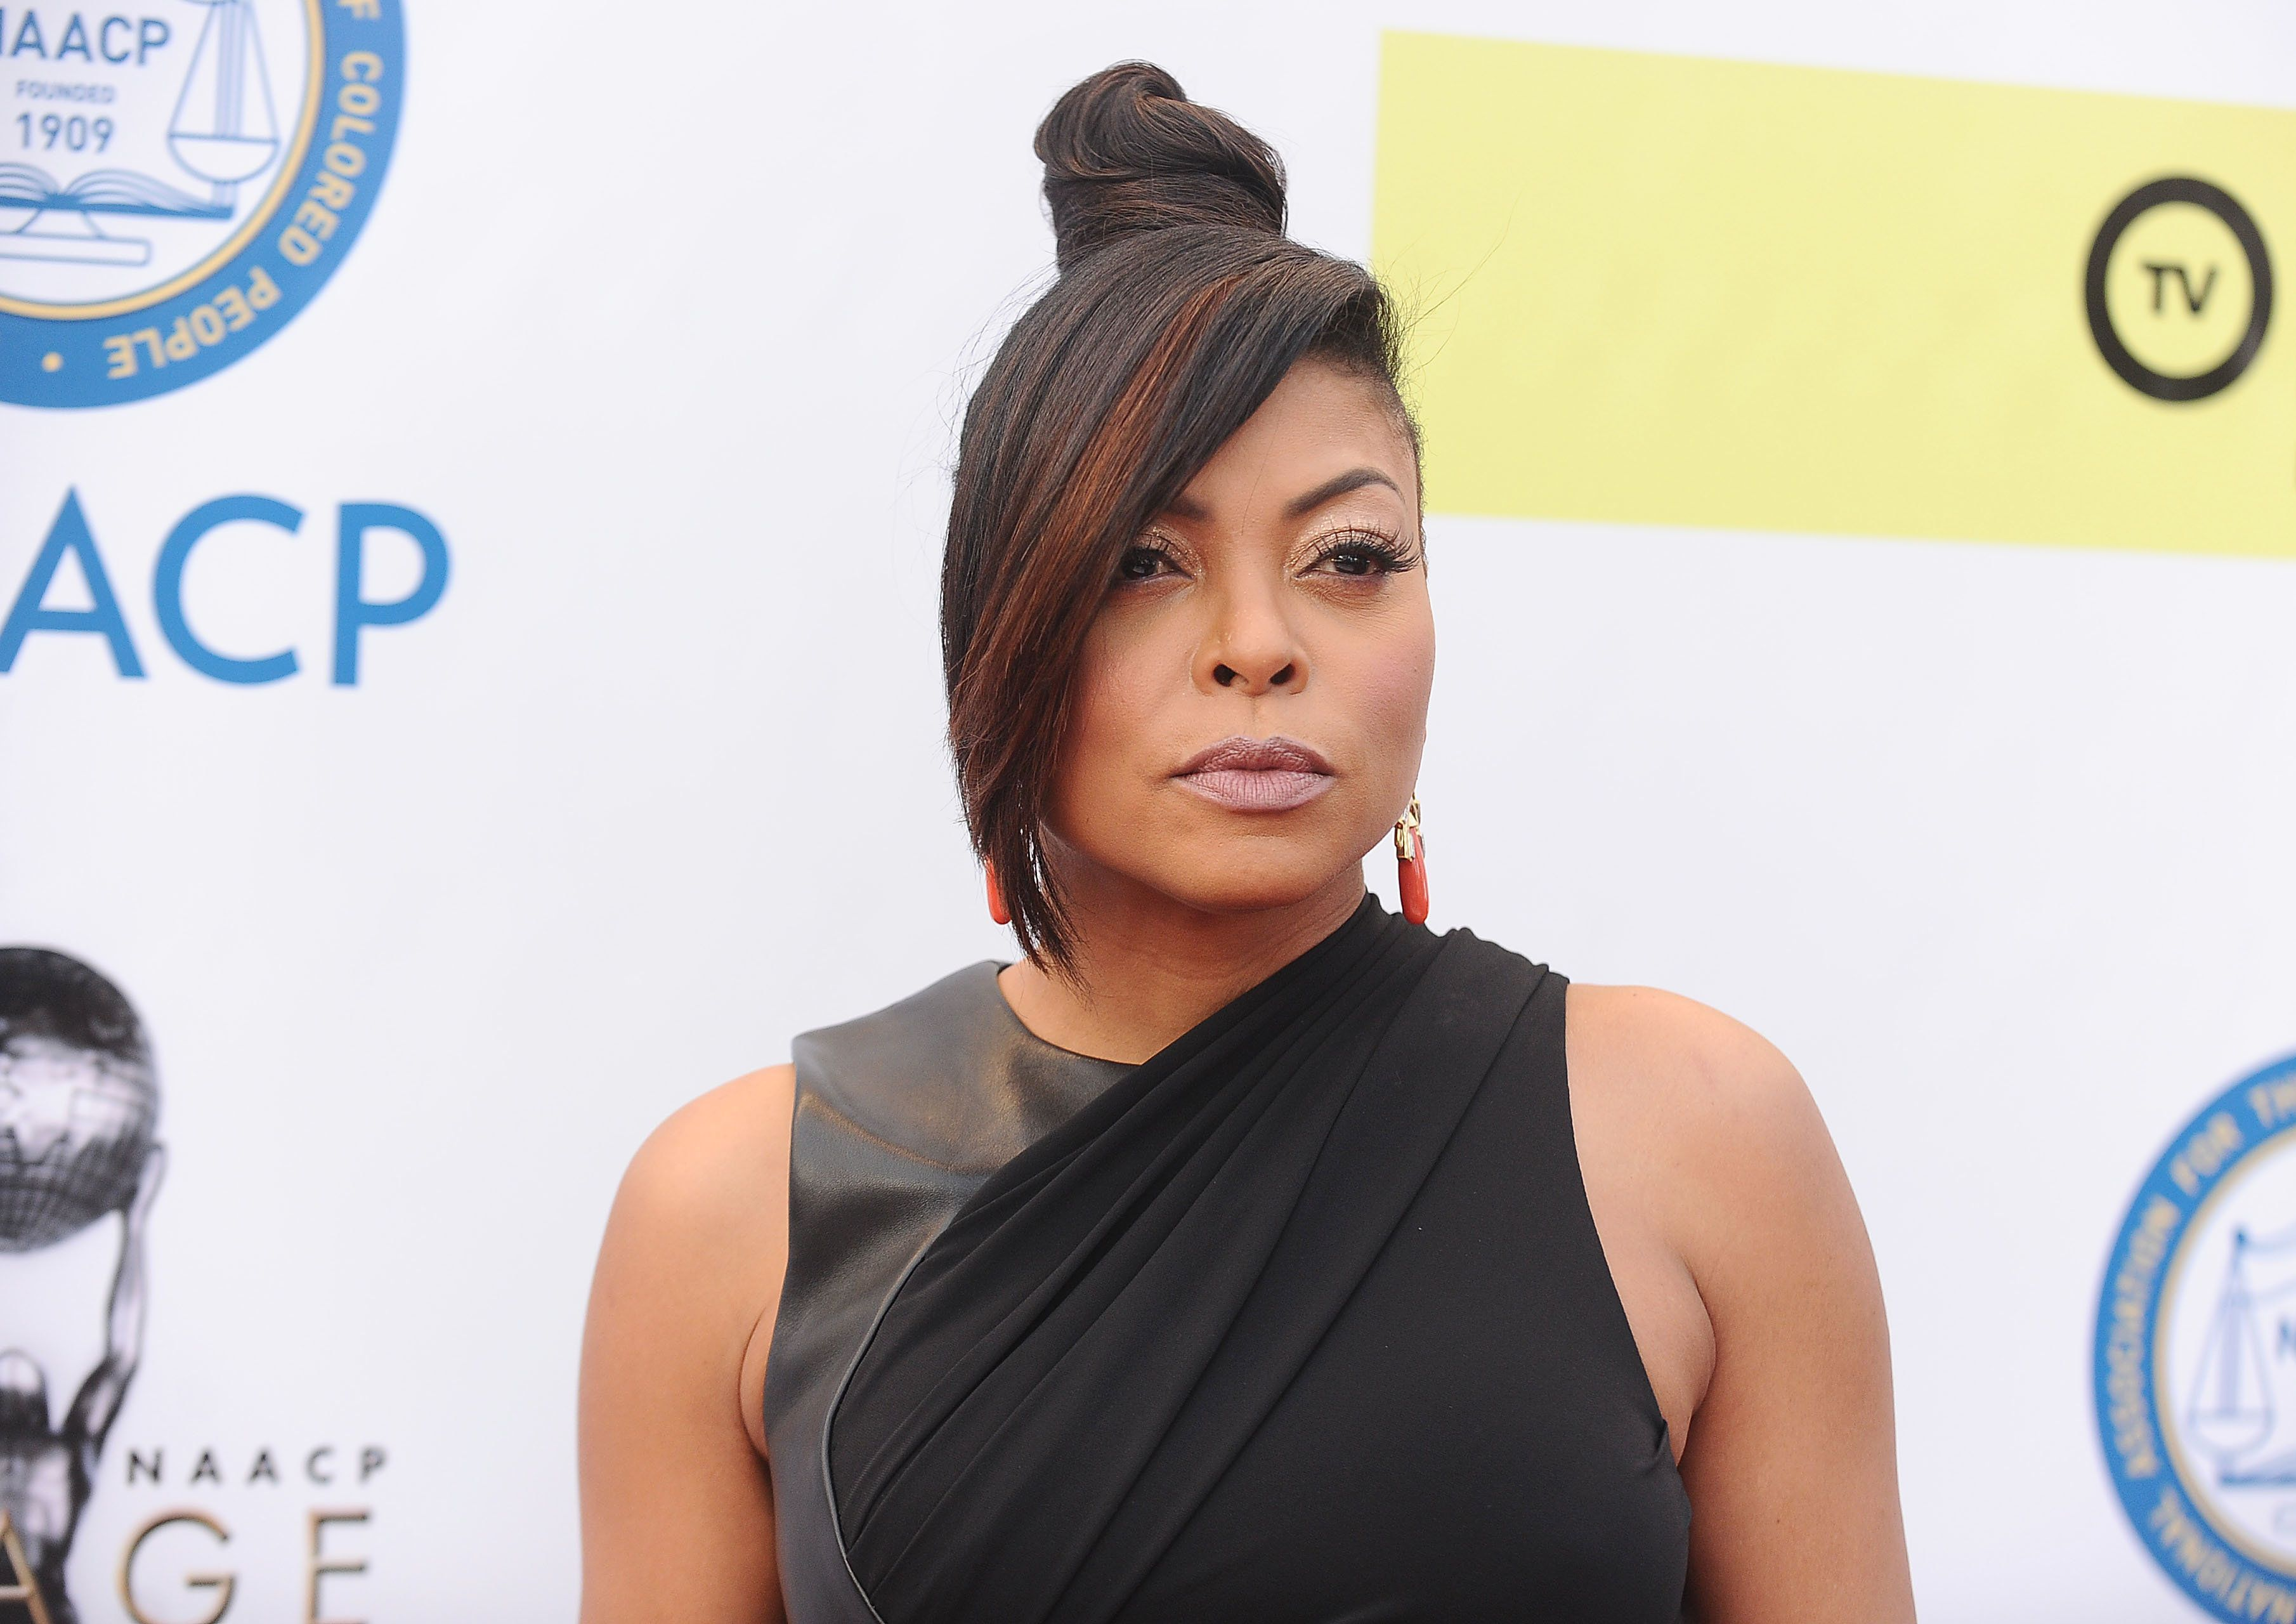 PASADENA, CA - FEBRUARY 11:  Actress Taraji P. Henson attends the 48th NAACP Image Awards at Pasadena Civic Auditorium on February 11, 2017 in Pasadena, California.  (Photo by Jason LaVeris/FilmMagic)